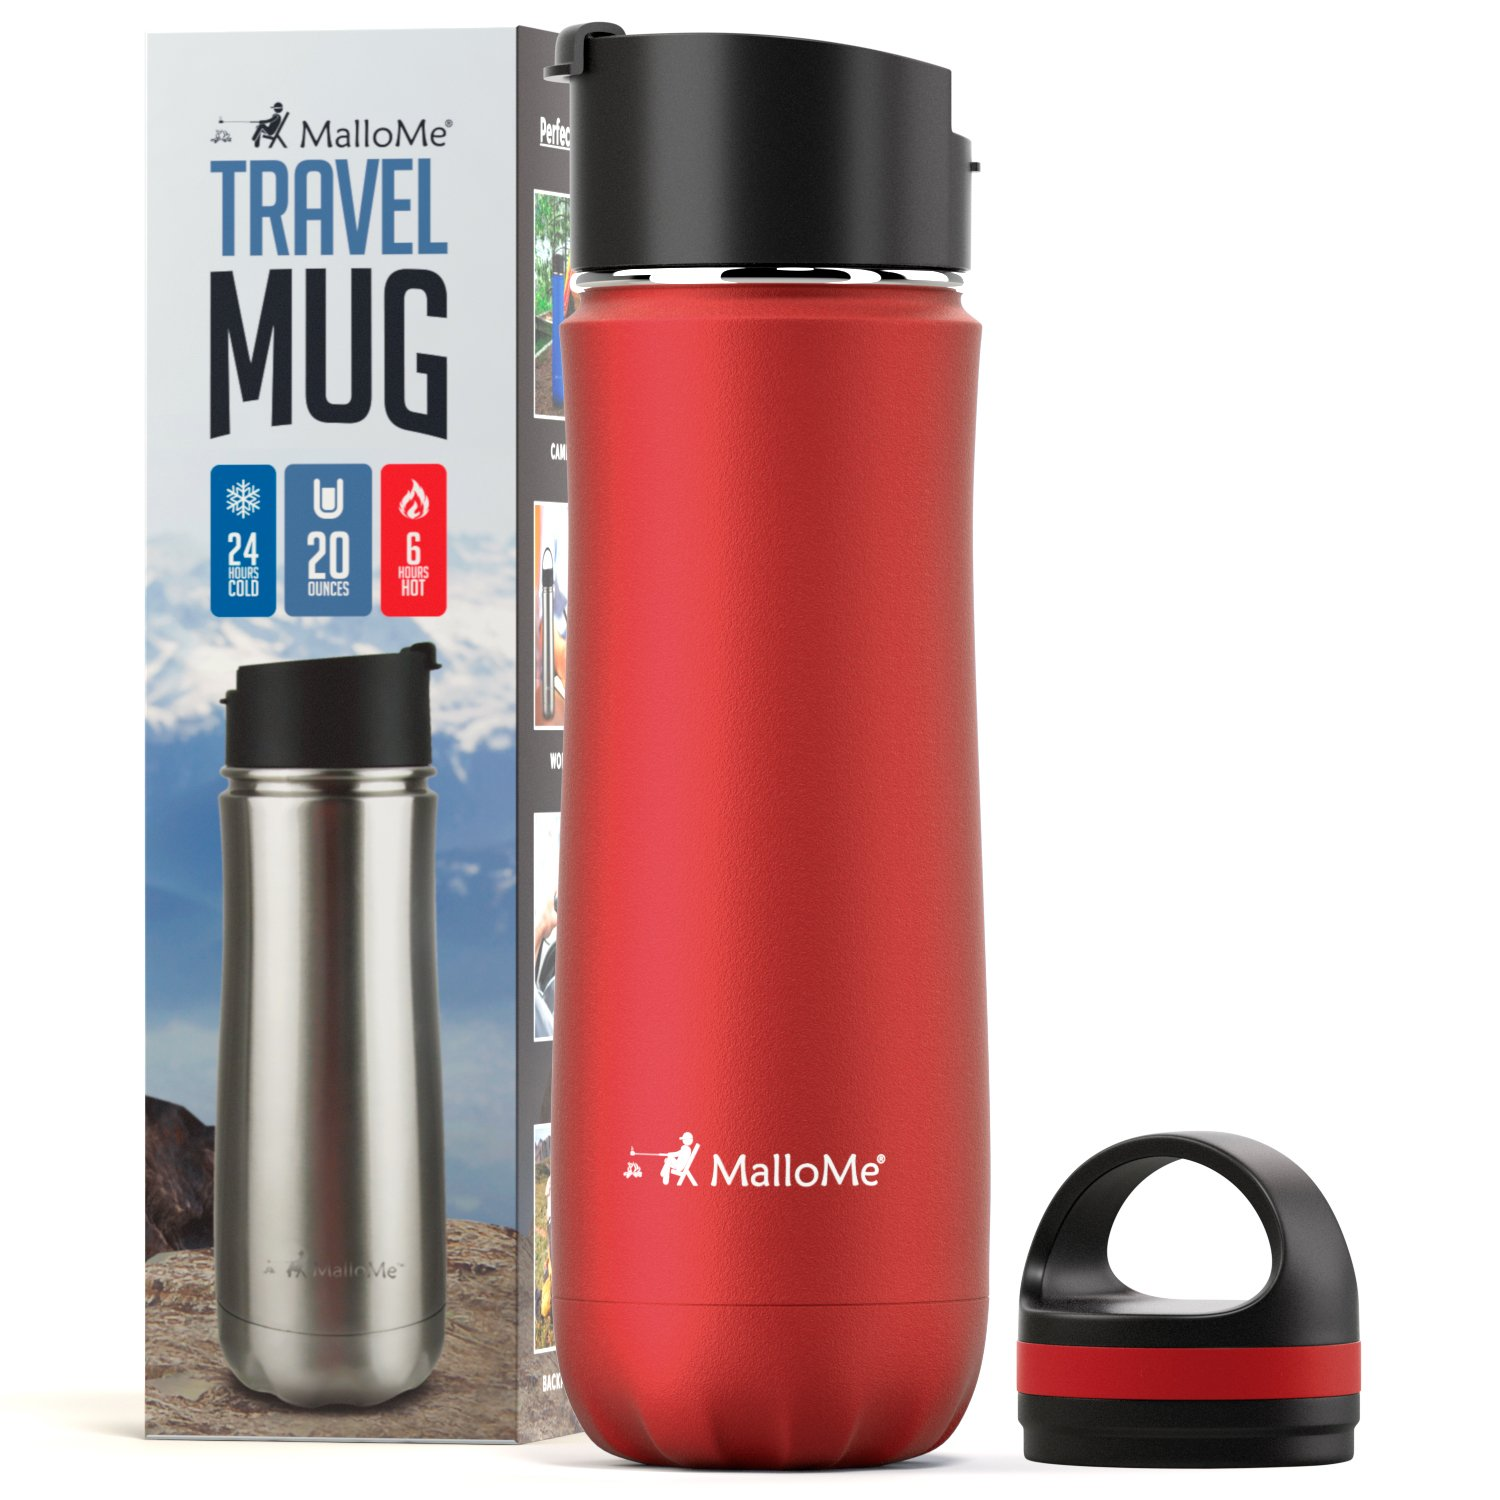 MalloMe Stainless Steel Coffee Travel Mug – 20 oz Vacuum Insulated Water Bottle Thermos Flask Cup Combo – Triple Walled Tumbler, 7 Colors, Two BPA Free Leak Proof Lids Included TRMug-Black